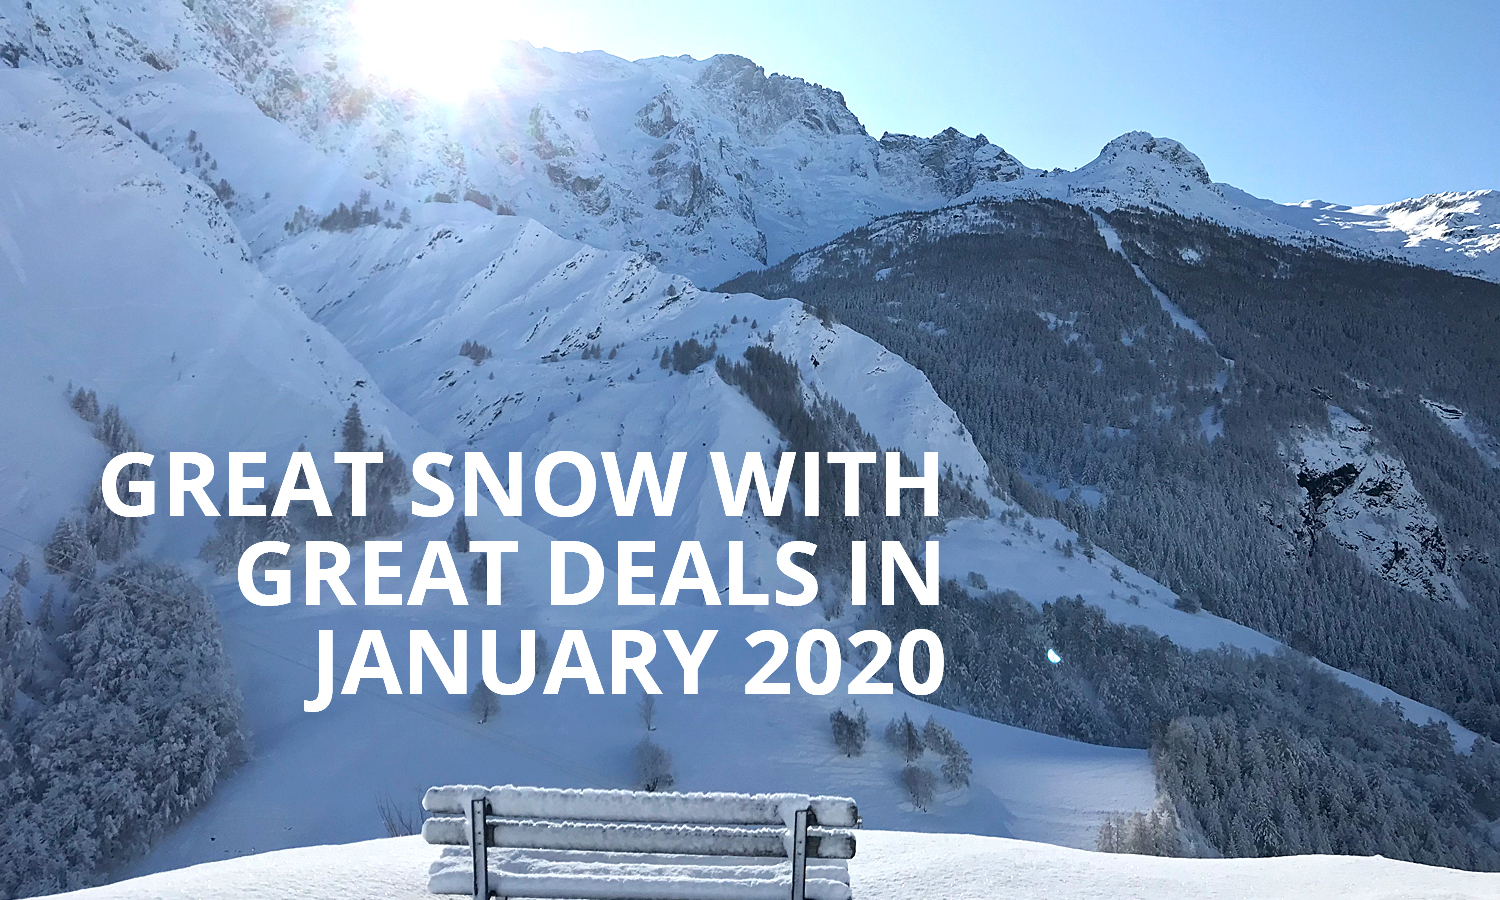 GREAT SNOW WITH GREAT DEALS IN JANUARY 2020